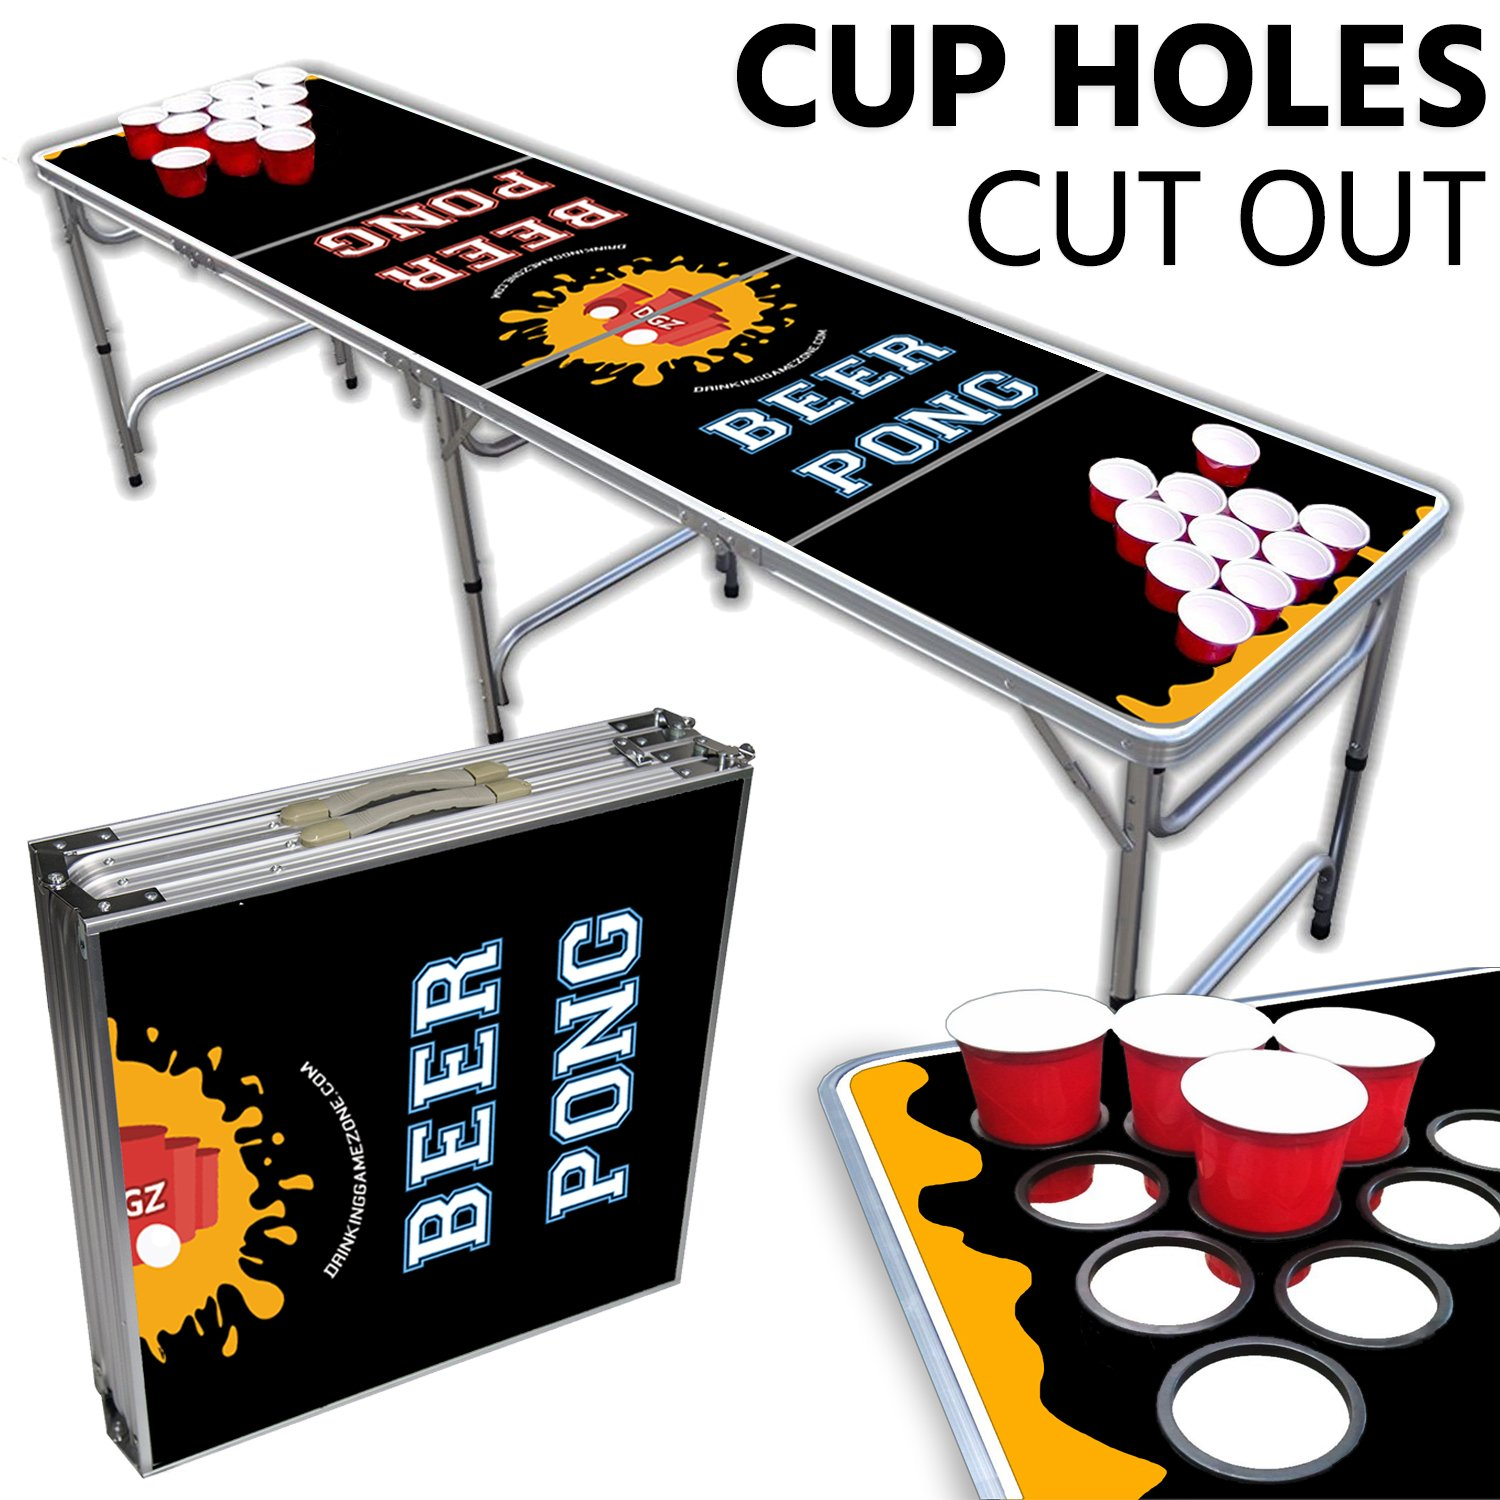 Beer Pong Table With Cup Holes – 8 Foot Easy Fold up w/ Adjustable Height – Professional Black + Yellow Design – Perfect for Tailgates, BP Parties, Flip Cup, & Pregames By Drinking Game Zone by Drinking Game Zone